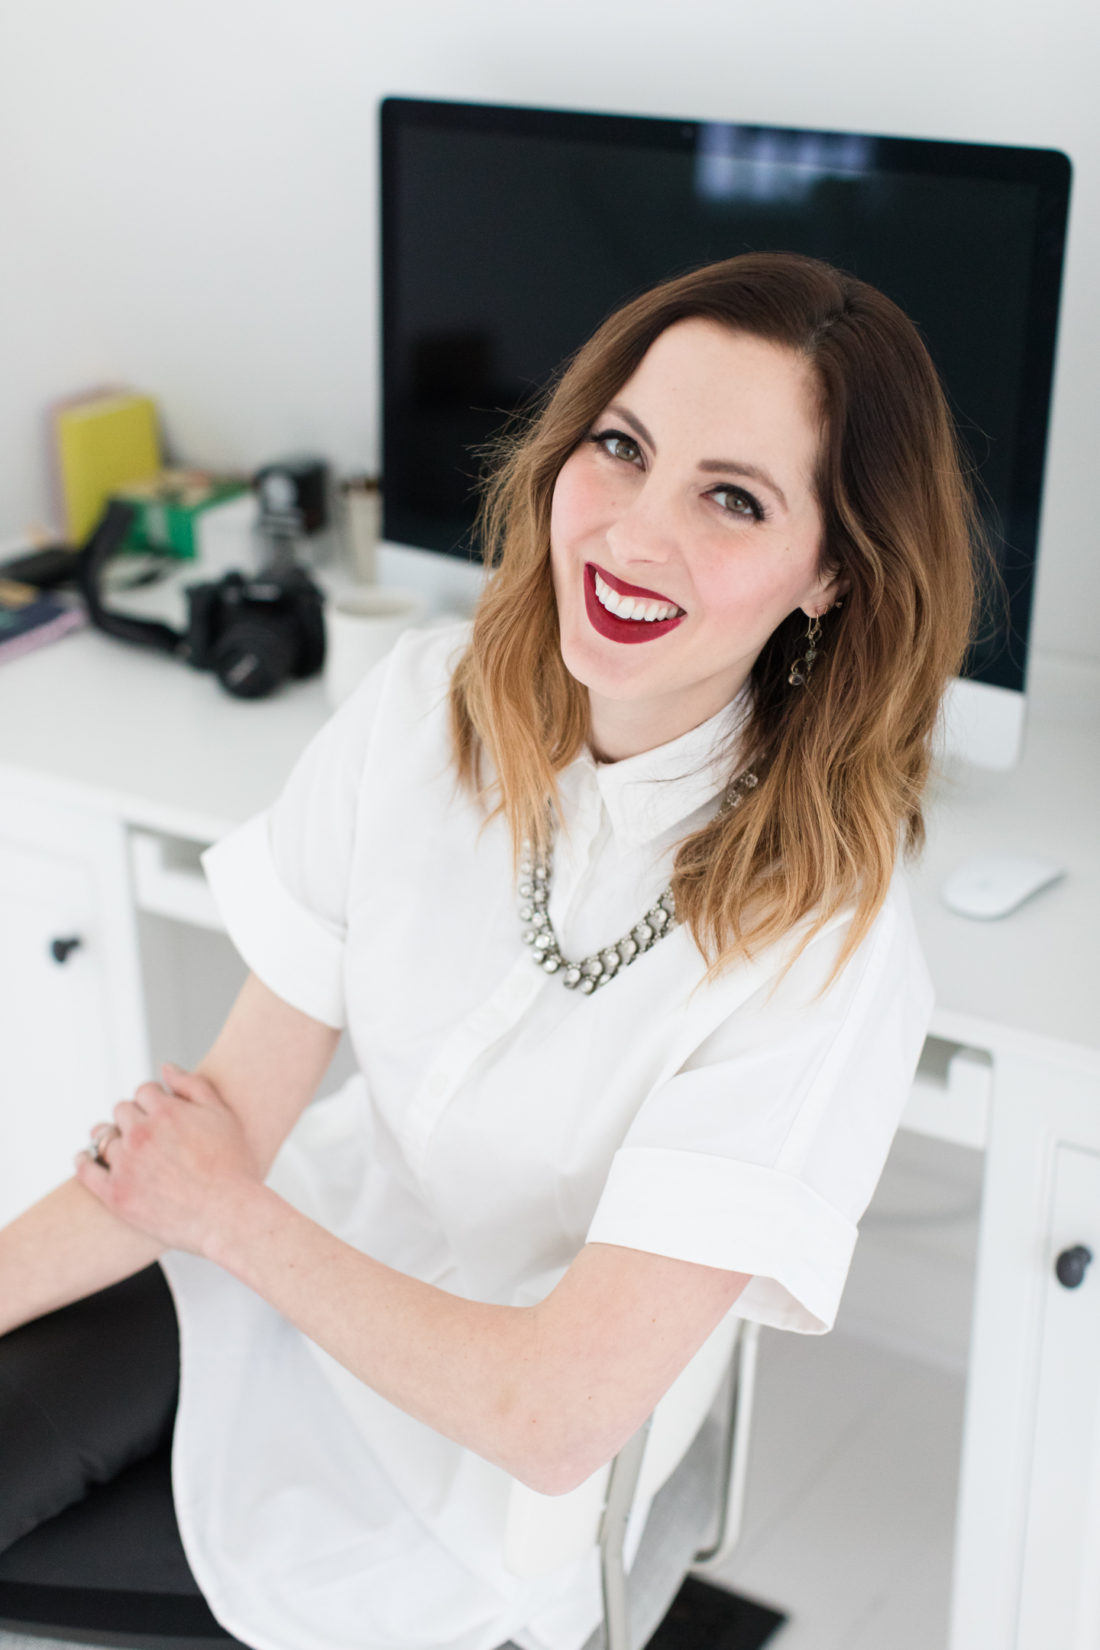 Eva Amurri Martino of lifestlye and motherhood blog Happily Eva After wears a crisp white button down shirt, a statement necklace, and red lipstick at her desk in Connecticut